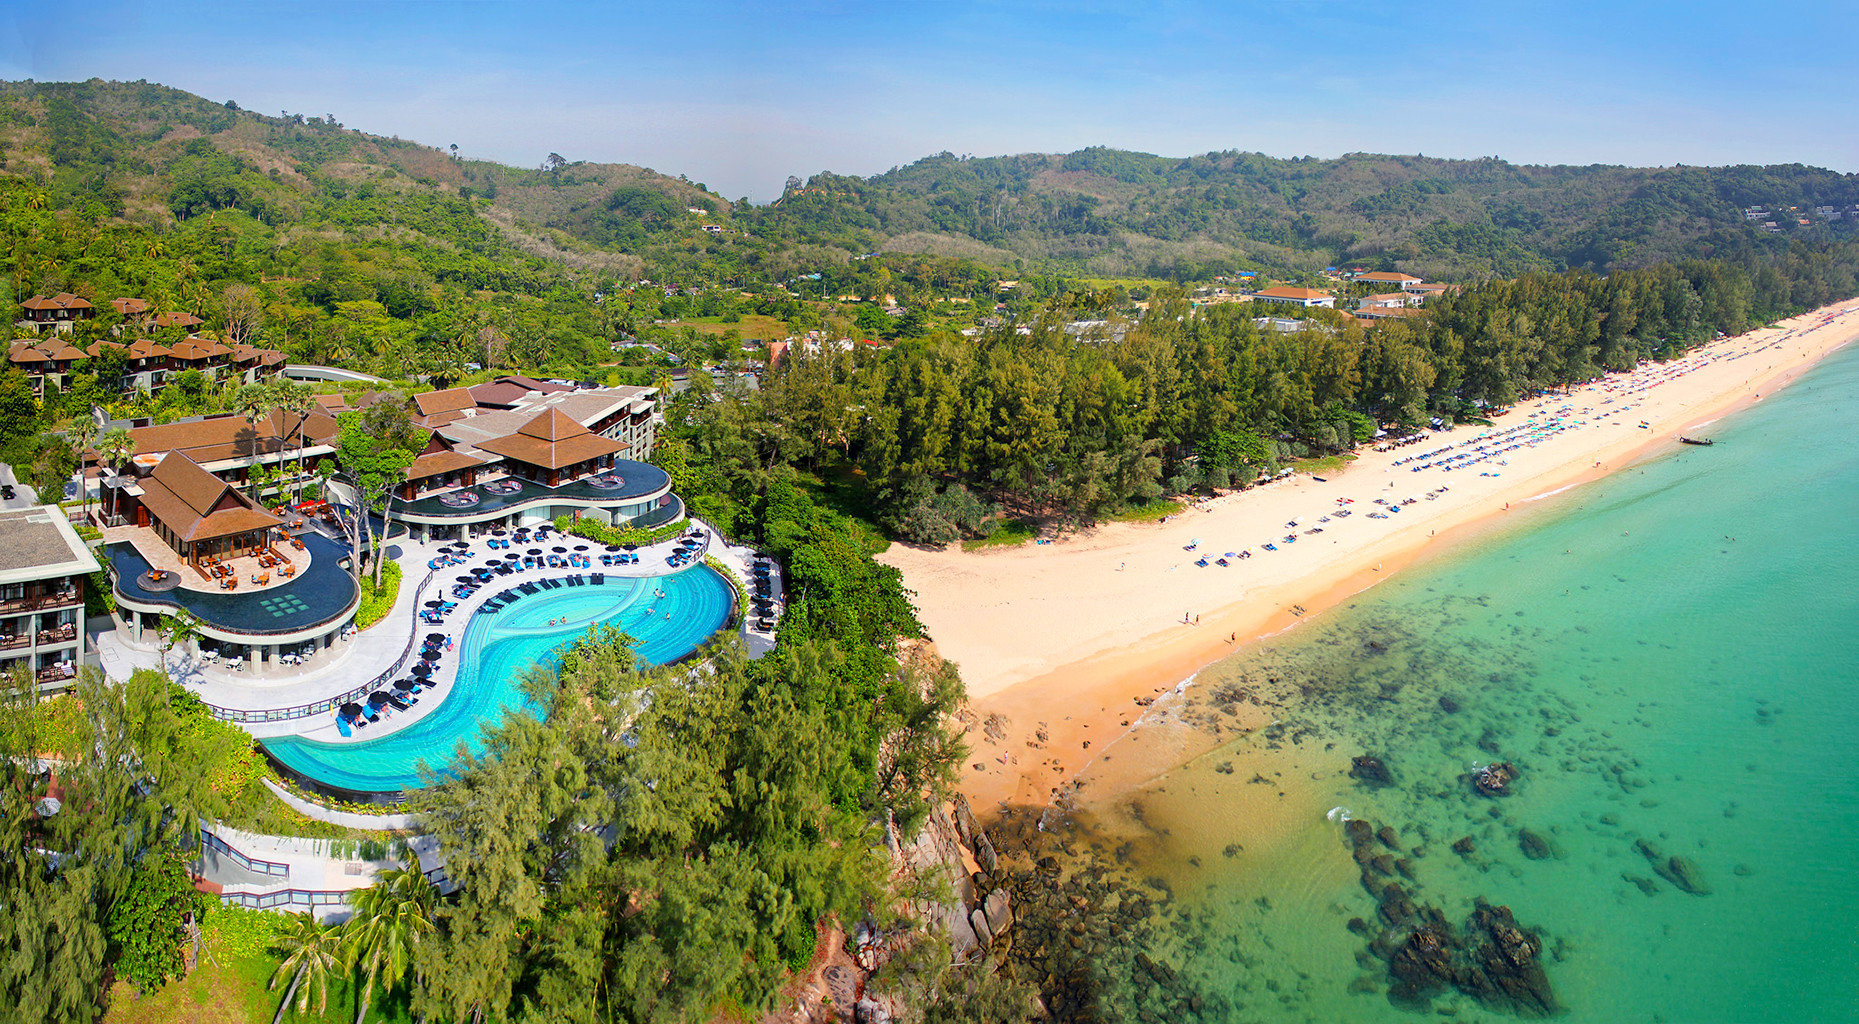 Beach Family Grounds Modern Pool Resort sky tree mountain valley Nature aerial photography canyon Sea Coast